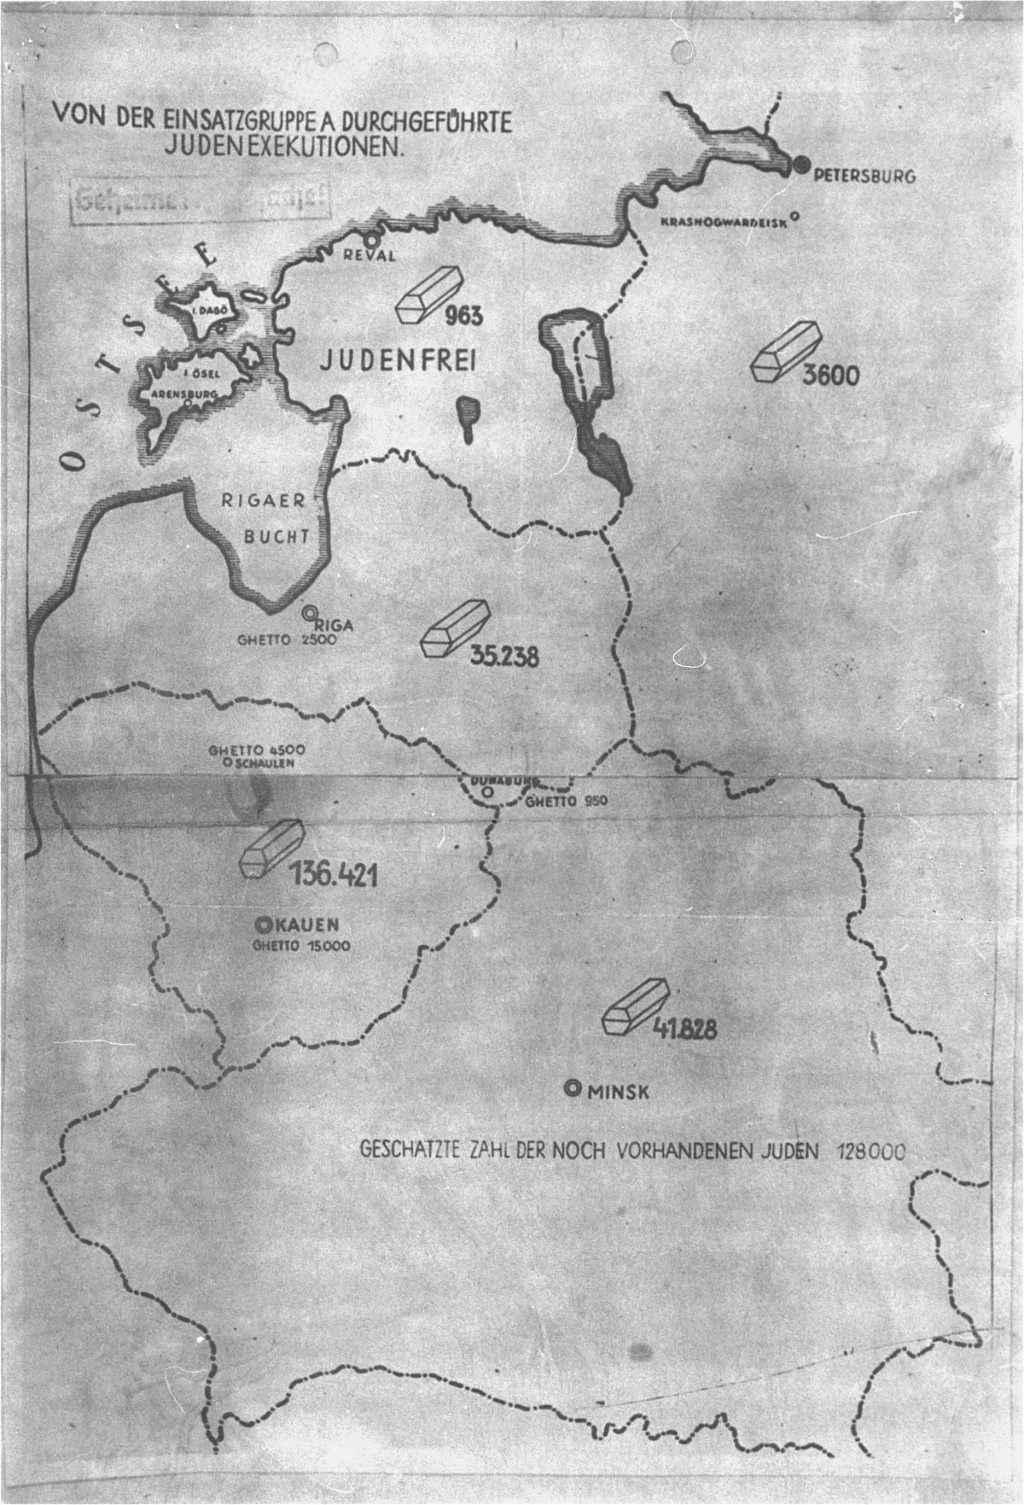 """<p>This map accompanied a secret undated German report on the mass murder of Jews by Einsatzgruppen A (mobile killing unit A). During the International Military Tribunal at Nuremberg, the map was introduced as evidence by both the American and British prosecution teams. The document, entitled """"Jewish Executions Carried Out by Einsatzgruppen A"""" and stamped """"Secret Reich Matter,"""" shows the number of Jews executed (symbolized by coffins) in the Baltic states and Belorussia by late 1941. The legend near the bottom states that """"the estimated number of Jews still on hand [was] 128,000.""""</p>"""